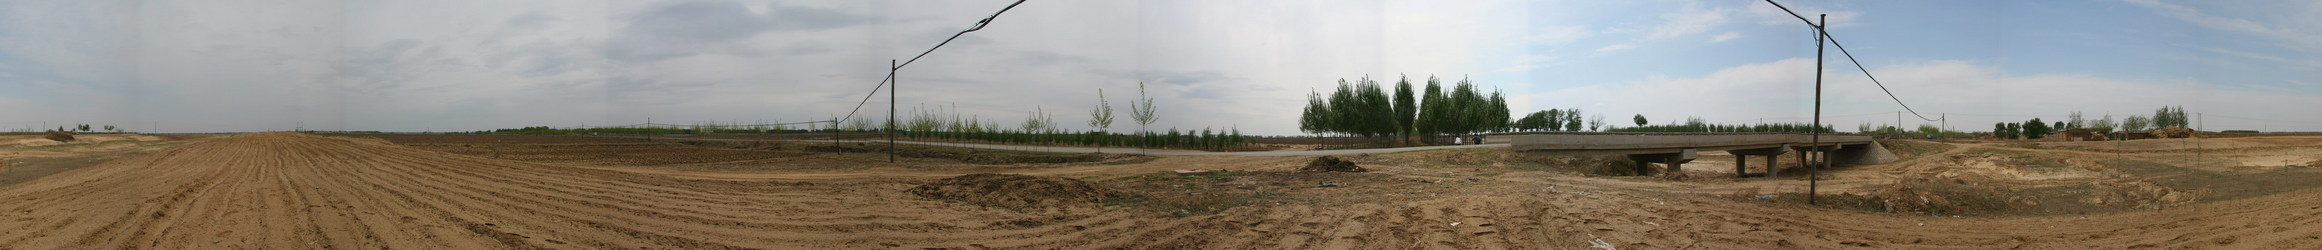 Panoramic Photo of 42N123E